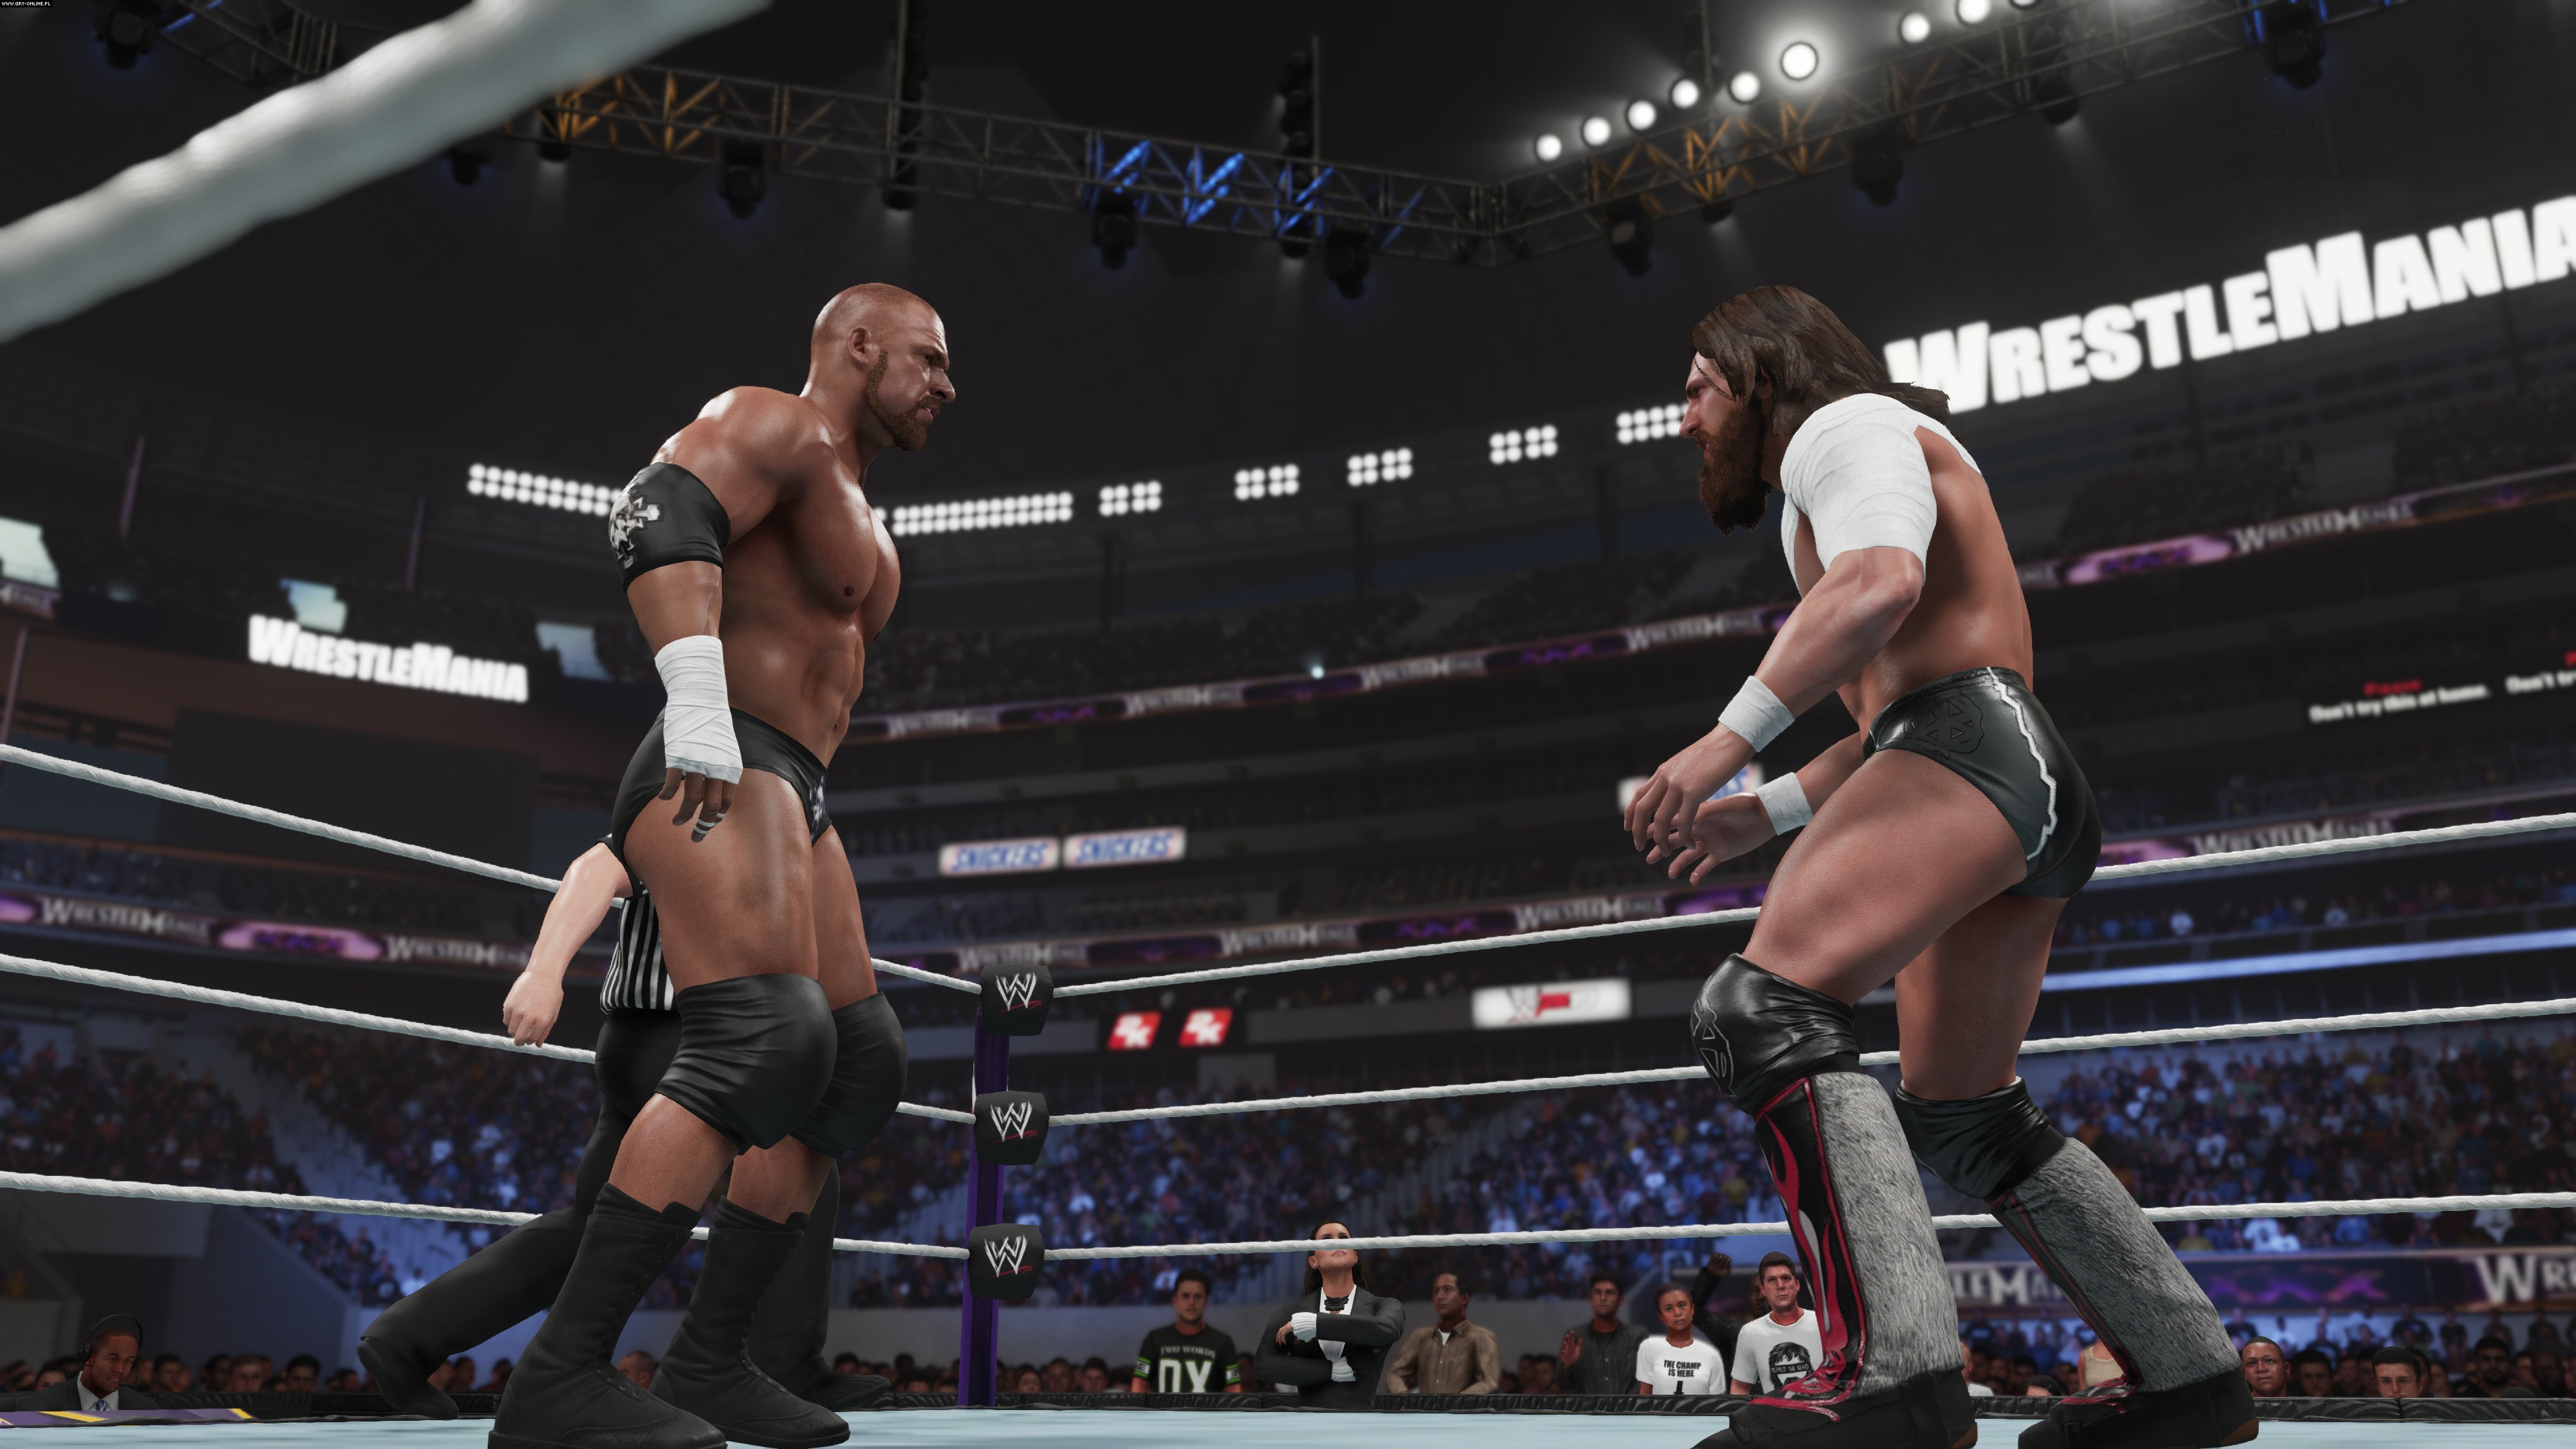 WWE 2K19 PC, PS4, XONE Games Image 14/14, Visual Concepts, 2K Games